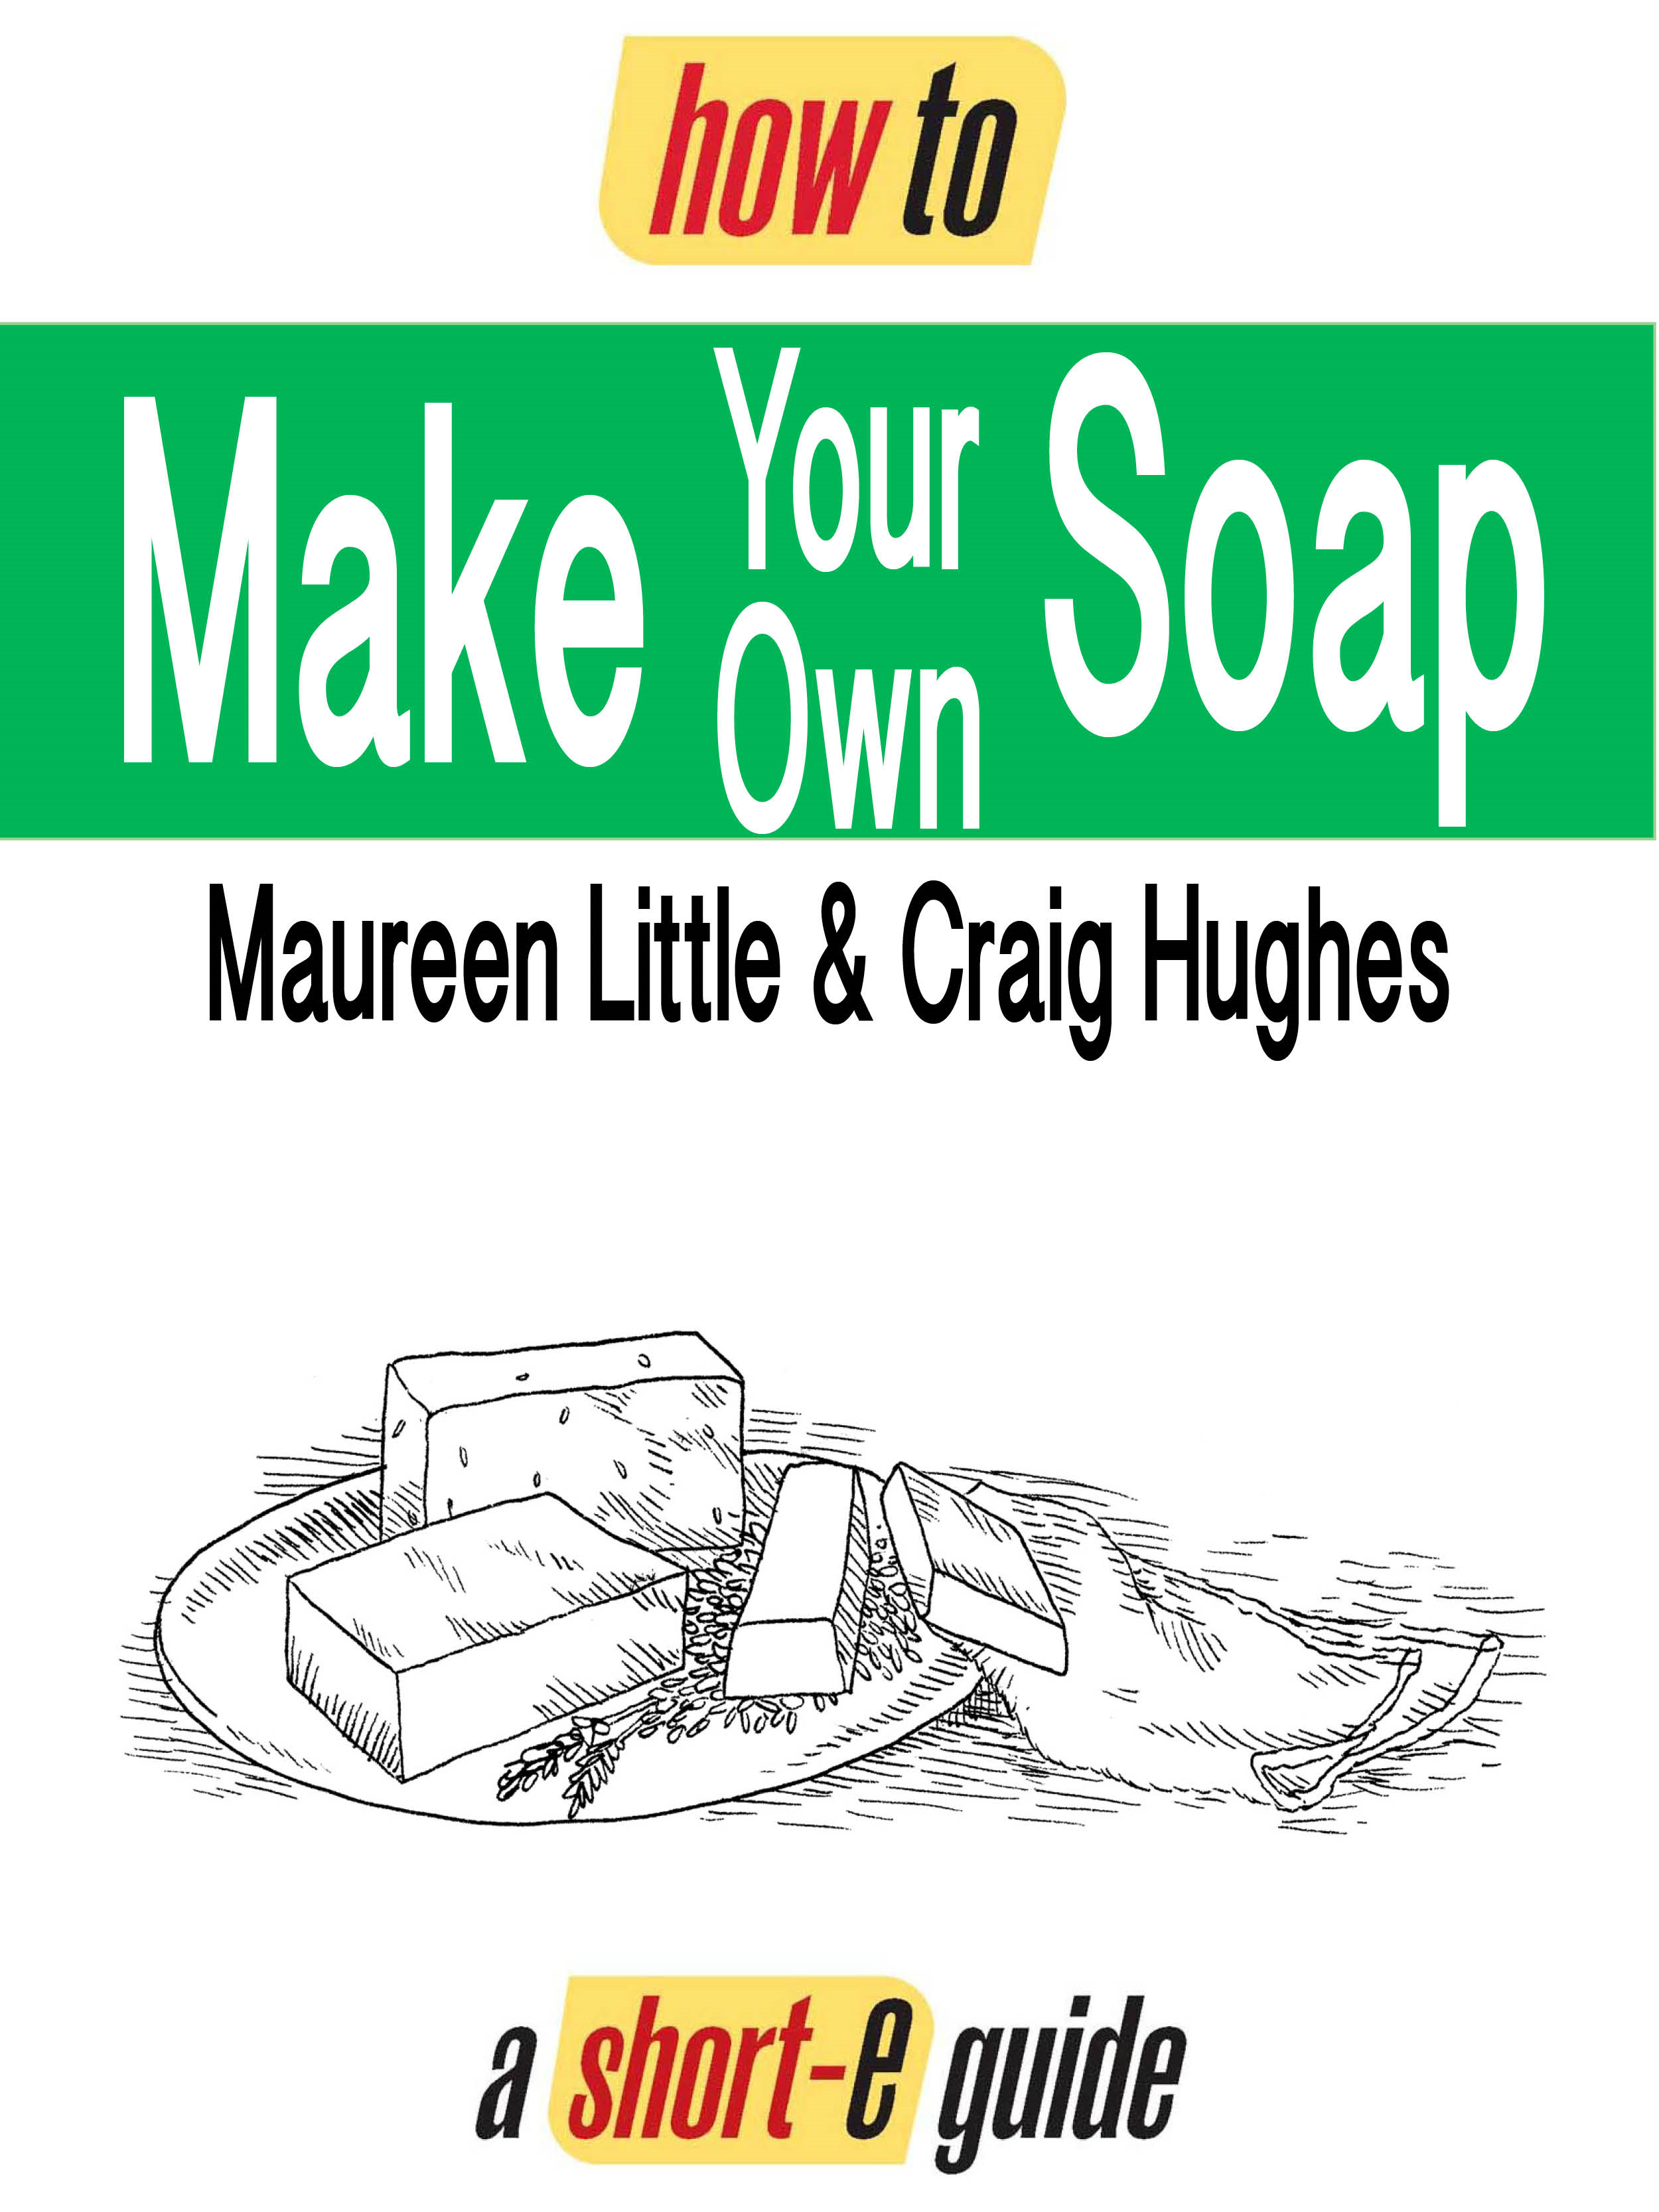 How To Make Your Own Soap (Short-e Guide)